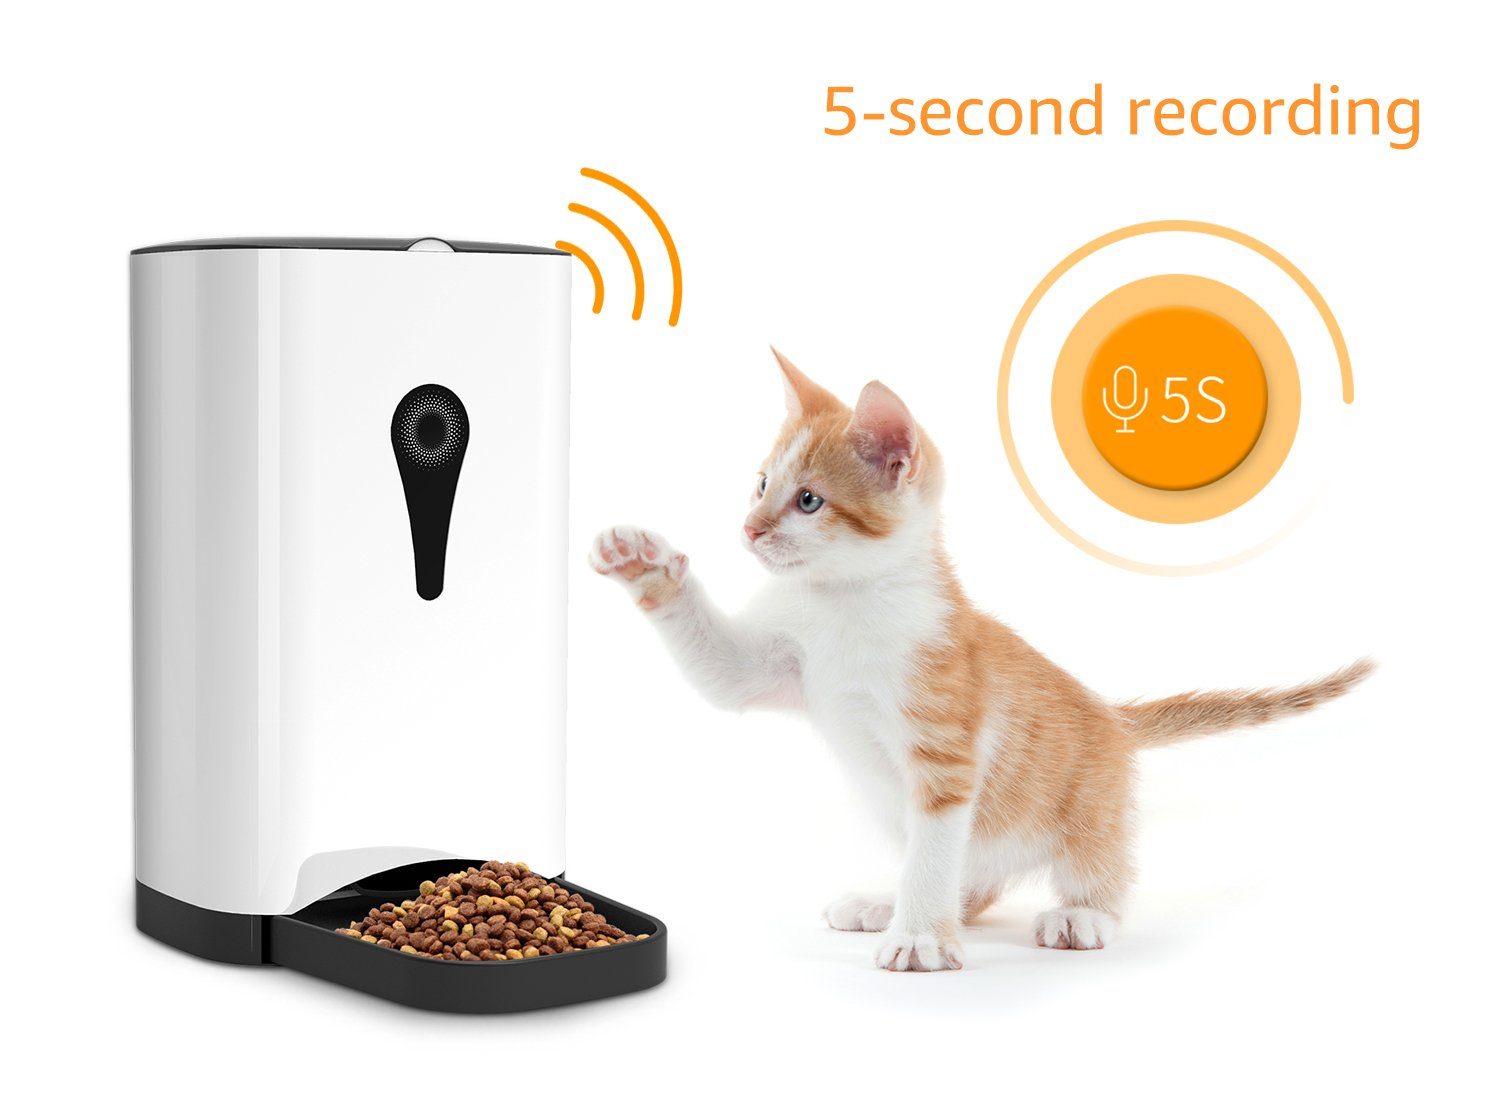 Smart Automatic Cat Feeder - SUKI&SAMI Pet Food Dispenser, with Timer Programmable, Voice Recording, WI-FI Enabled APP control Up to 8 Meals a Day by SUKI&SAMI (Image #5)